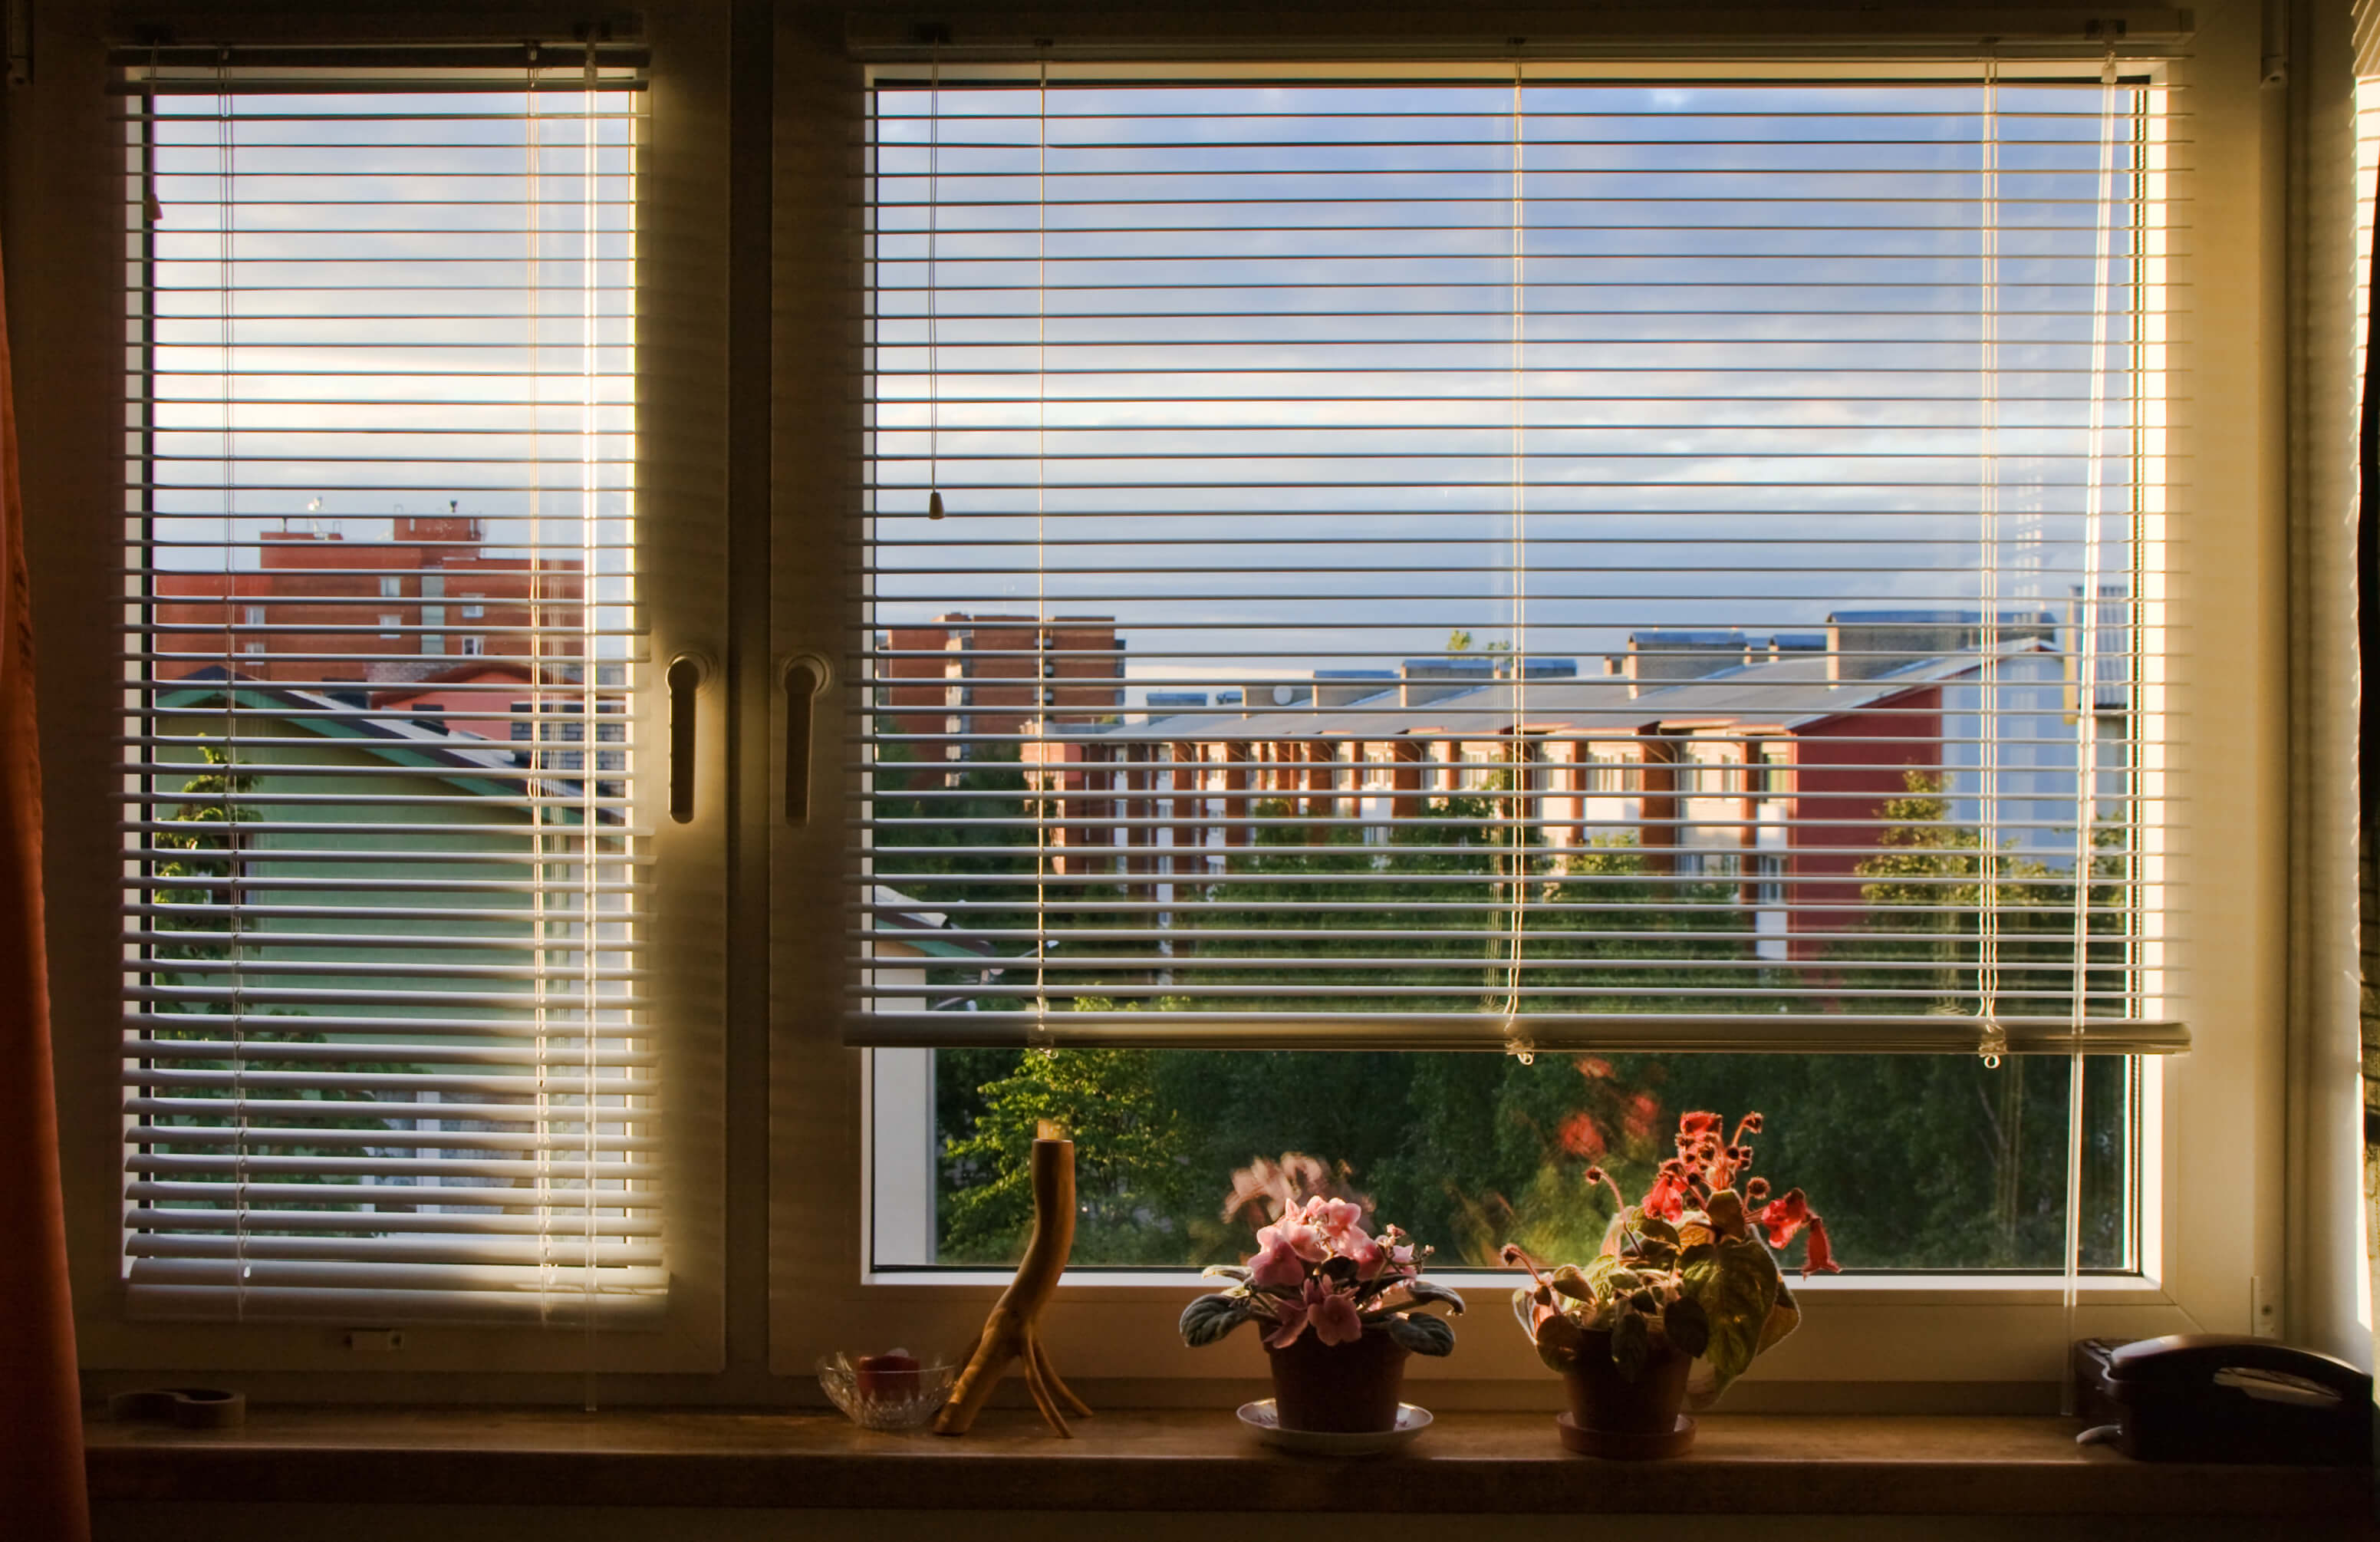 A view of buildings through venetian blinds